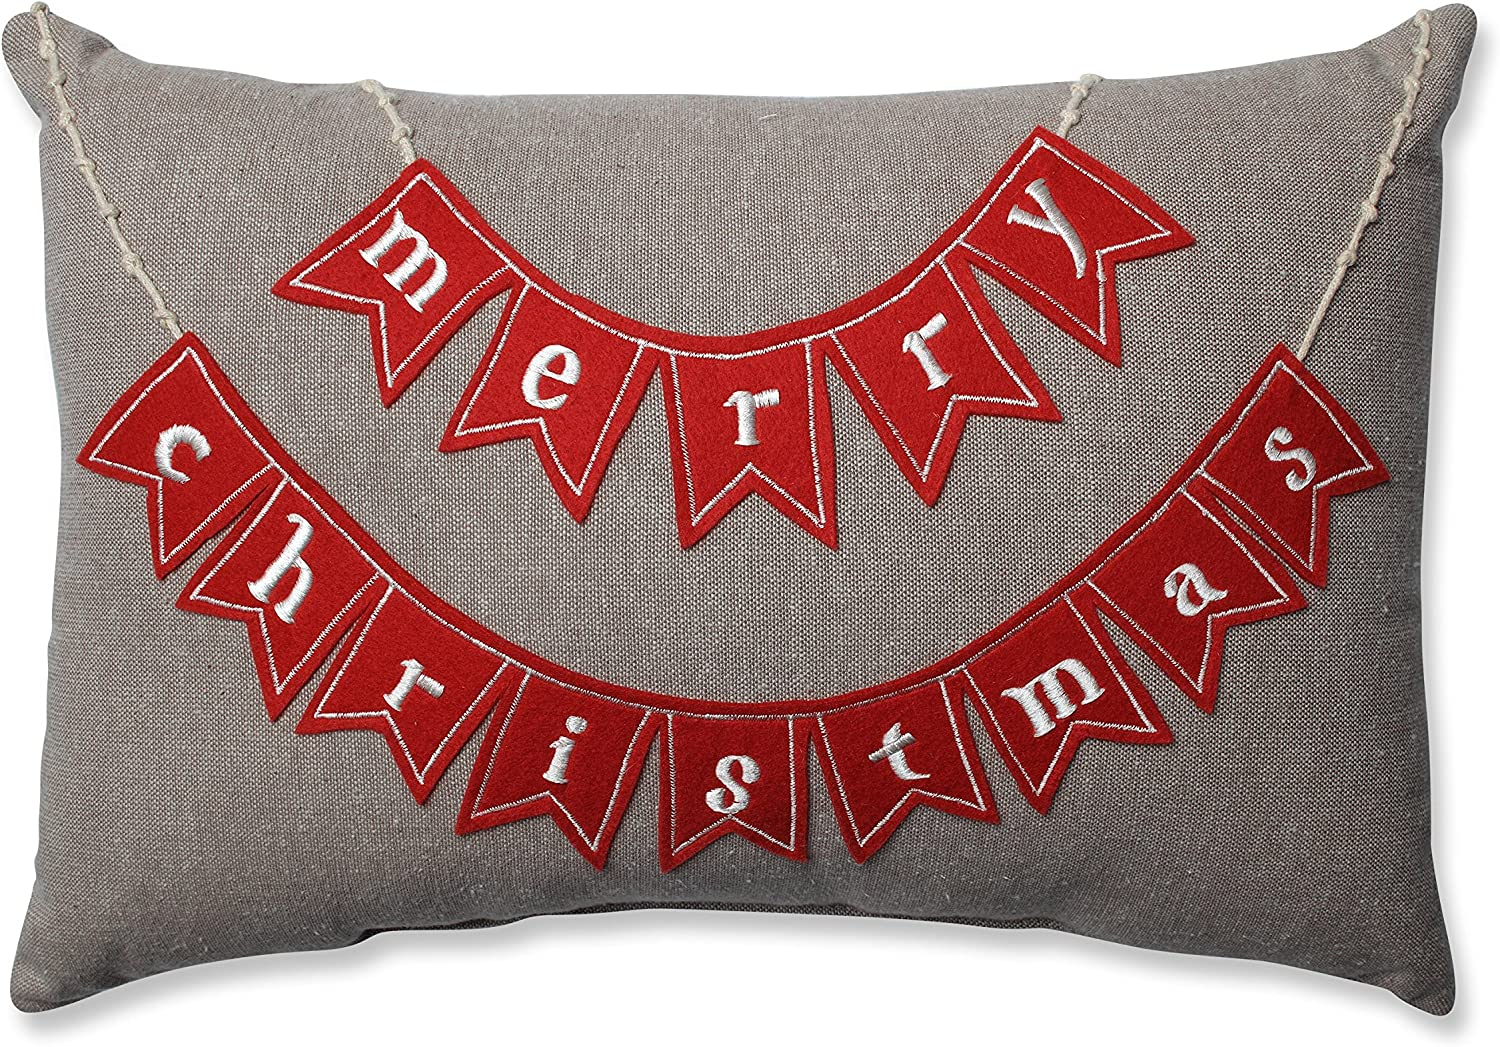 Pillow Perfect Country Home Merry Christmas Rectangular Throw Pillow, Red/Biscuit